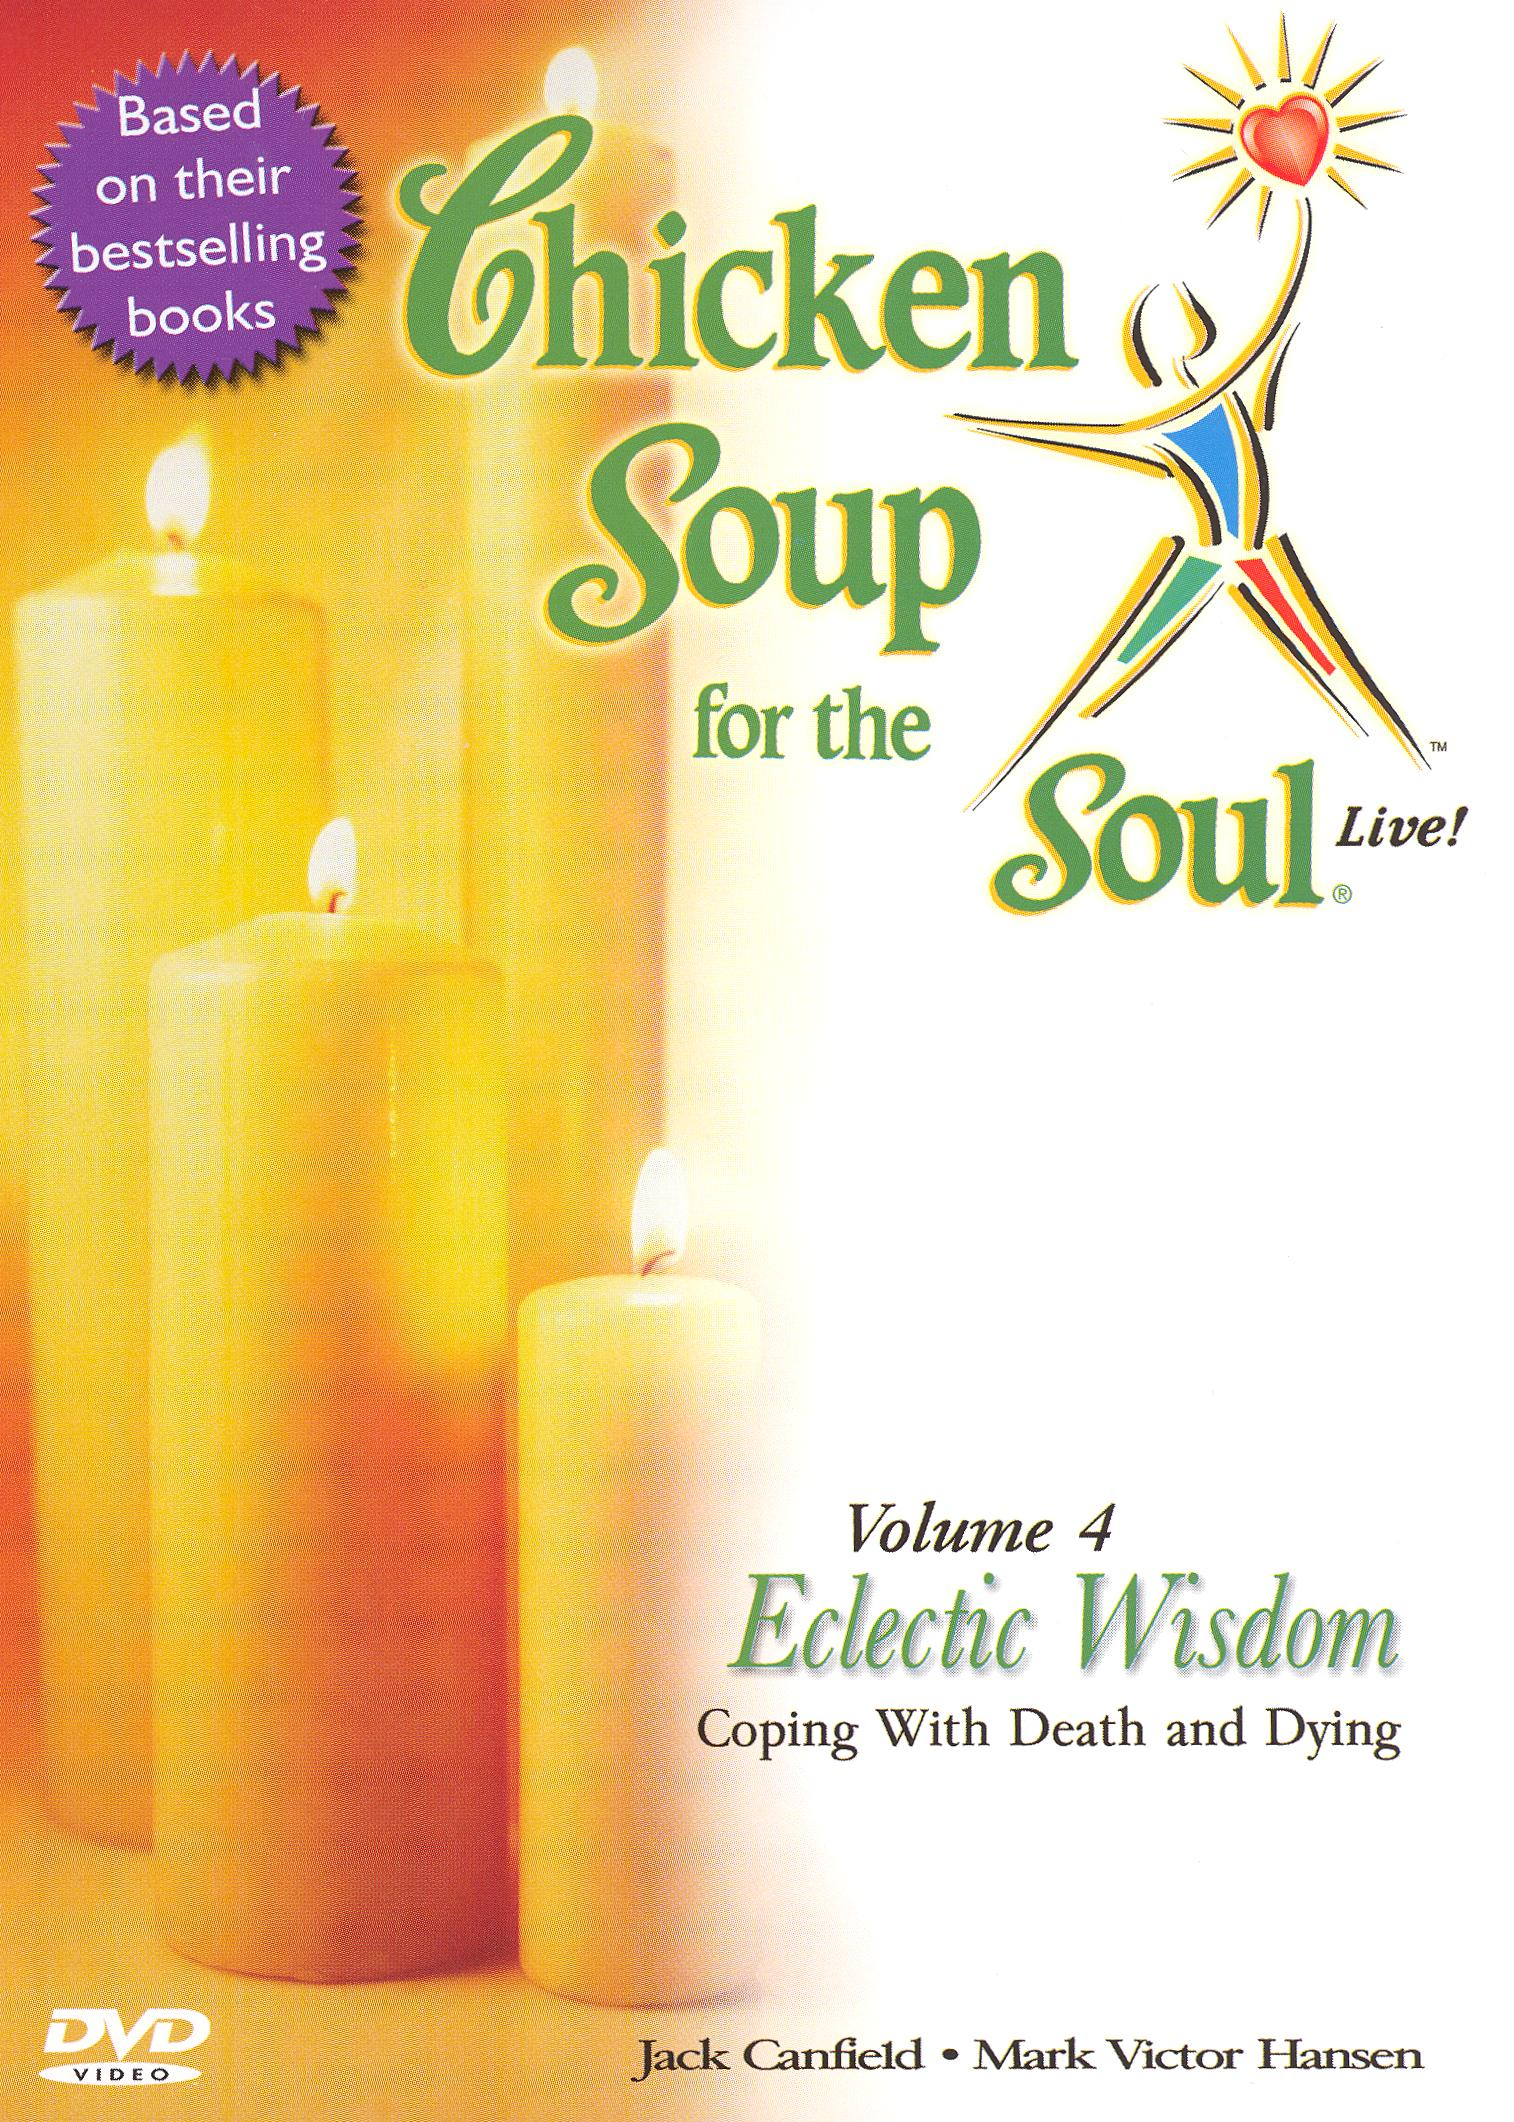 Chicken Soup for the Soul Live! Vol. 4: Eclectic Wisdom